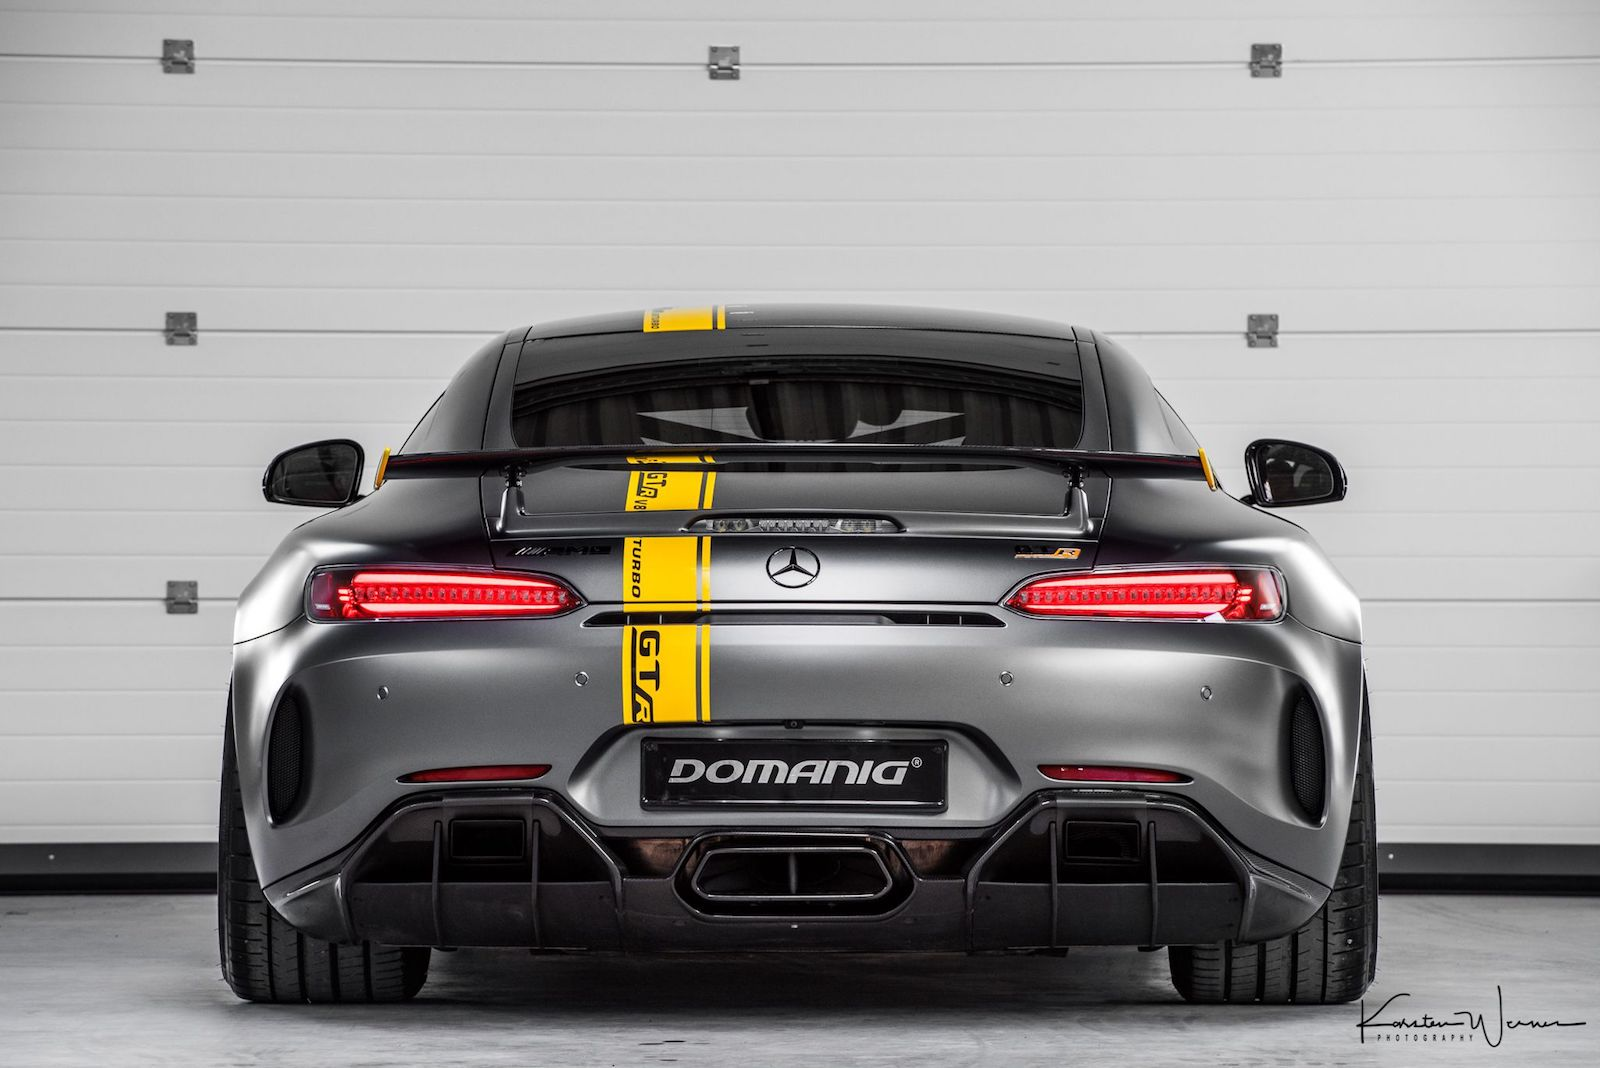 This 769-Horsepower Mercedes-AMG GT R Does 205 MPH - The Drive